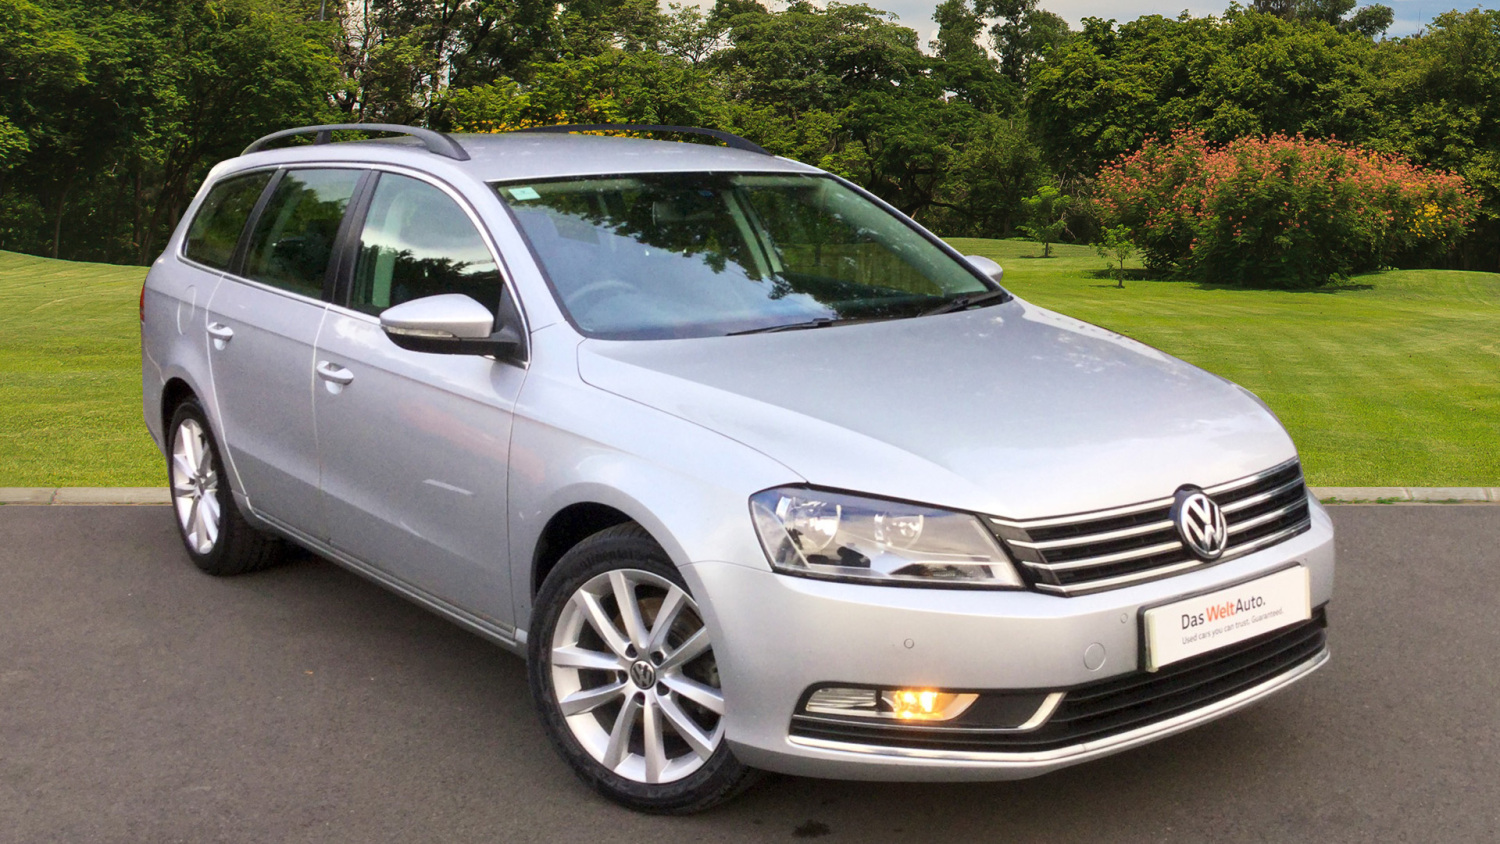 used volkswagen passat 2 0 tdi bluemotion tech executive 5dr diesel estate for sale in scotland. Black Bedroom Furniture Sets. Home Design Ideas